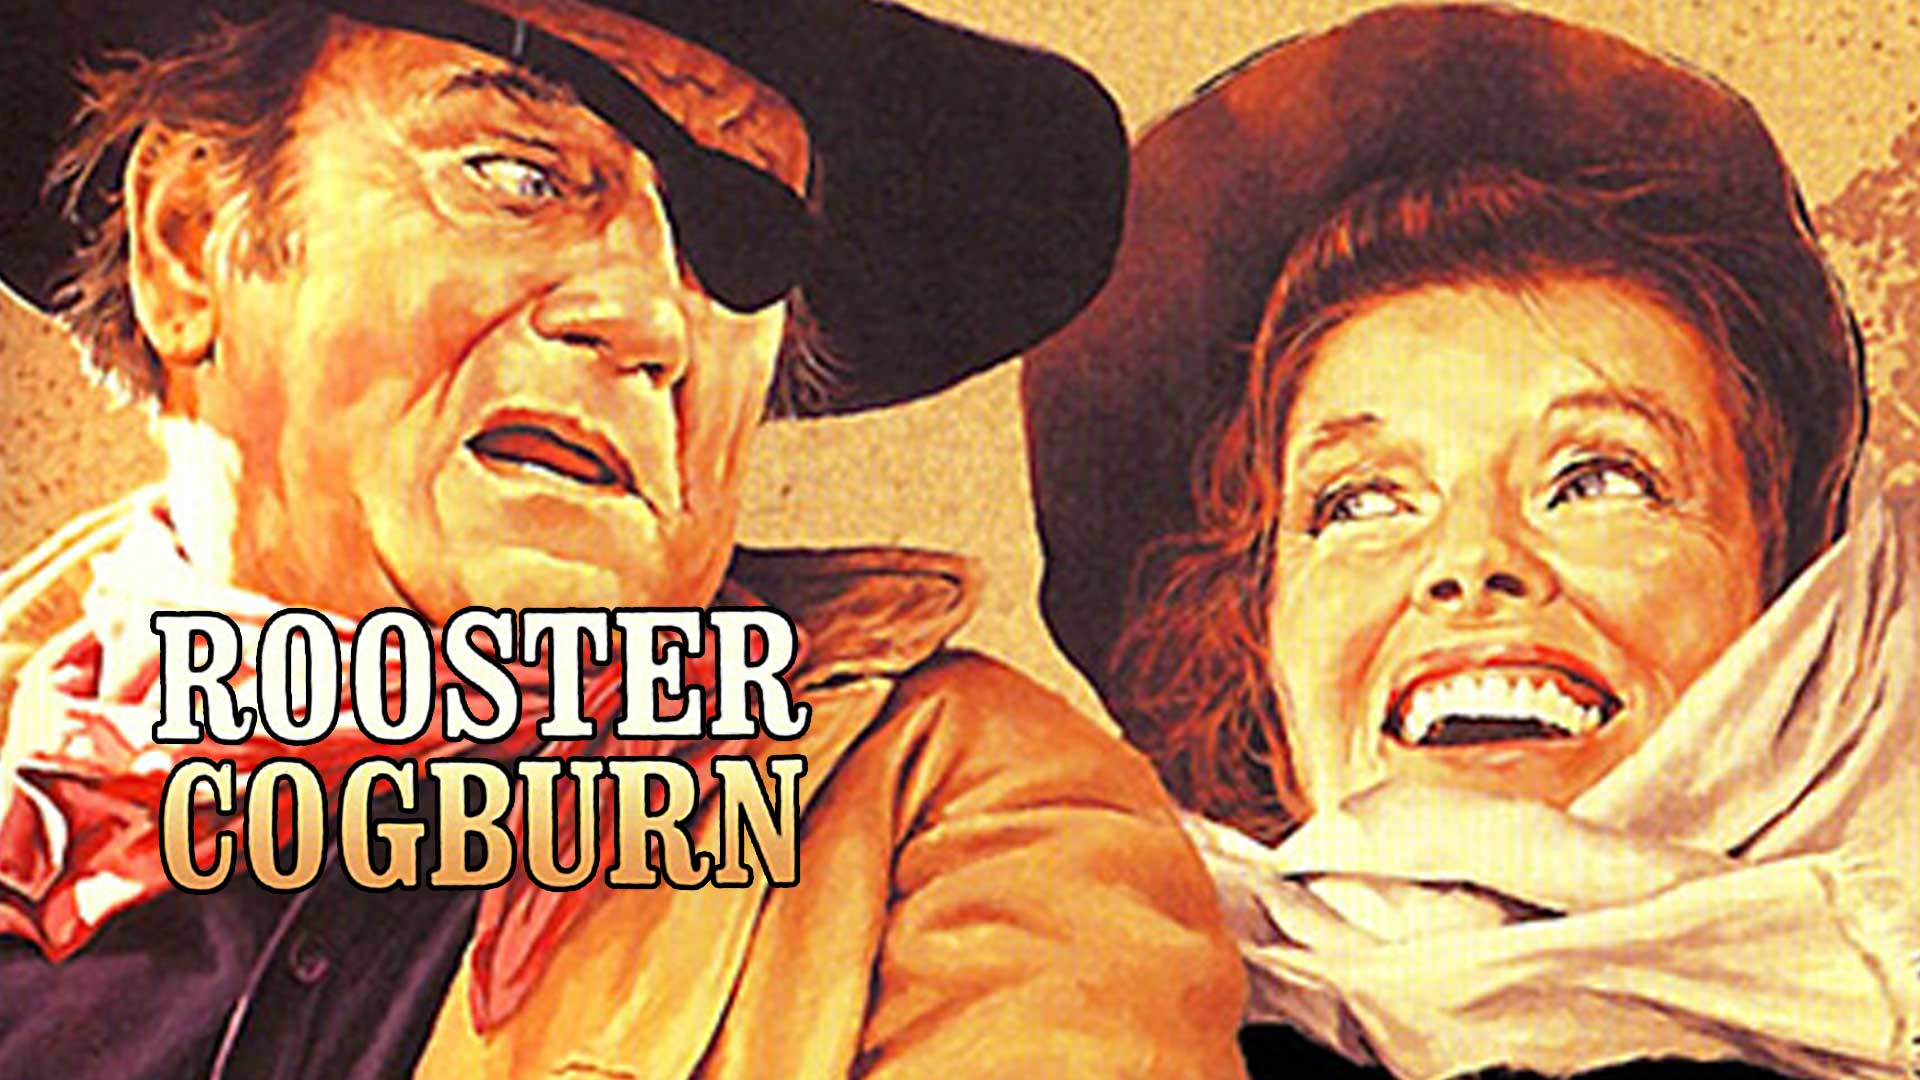 Rooster Cogburn